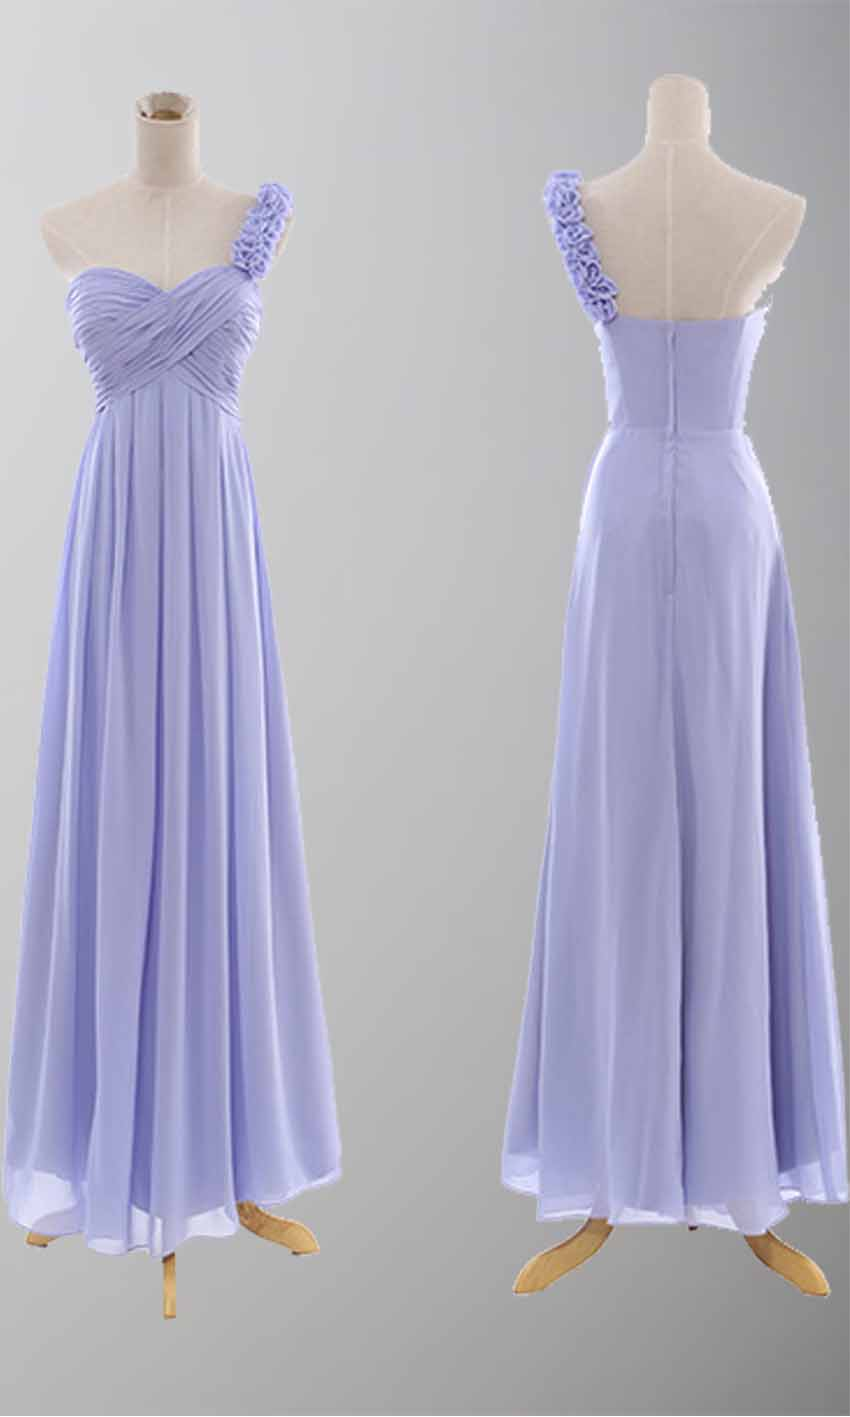 Delicate Asymmetric Empire One Shoulder Dress For Wedding KSP084 [KSP084] - £89.00 : Cheap Prom Dresses Uk, Bridesmaid Dresses, 2014 Prom & Evening Dresses, Look for cheap elegant prom dresses 2014, cocktail gowns, or dresses for special occasions? kissprom.co.uk offers various bridesmaid dresses, evening dress, free shipping to UK etc.